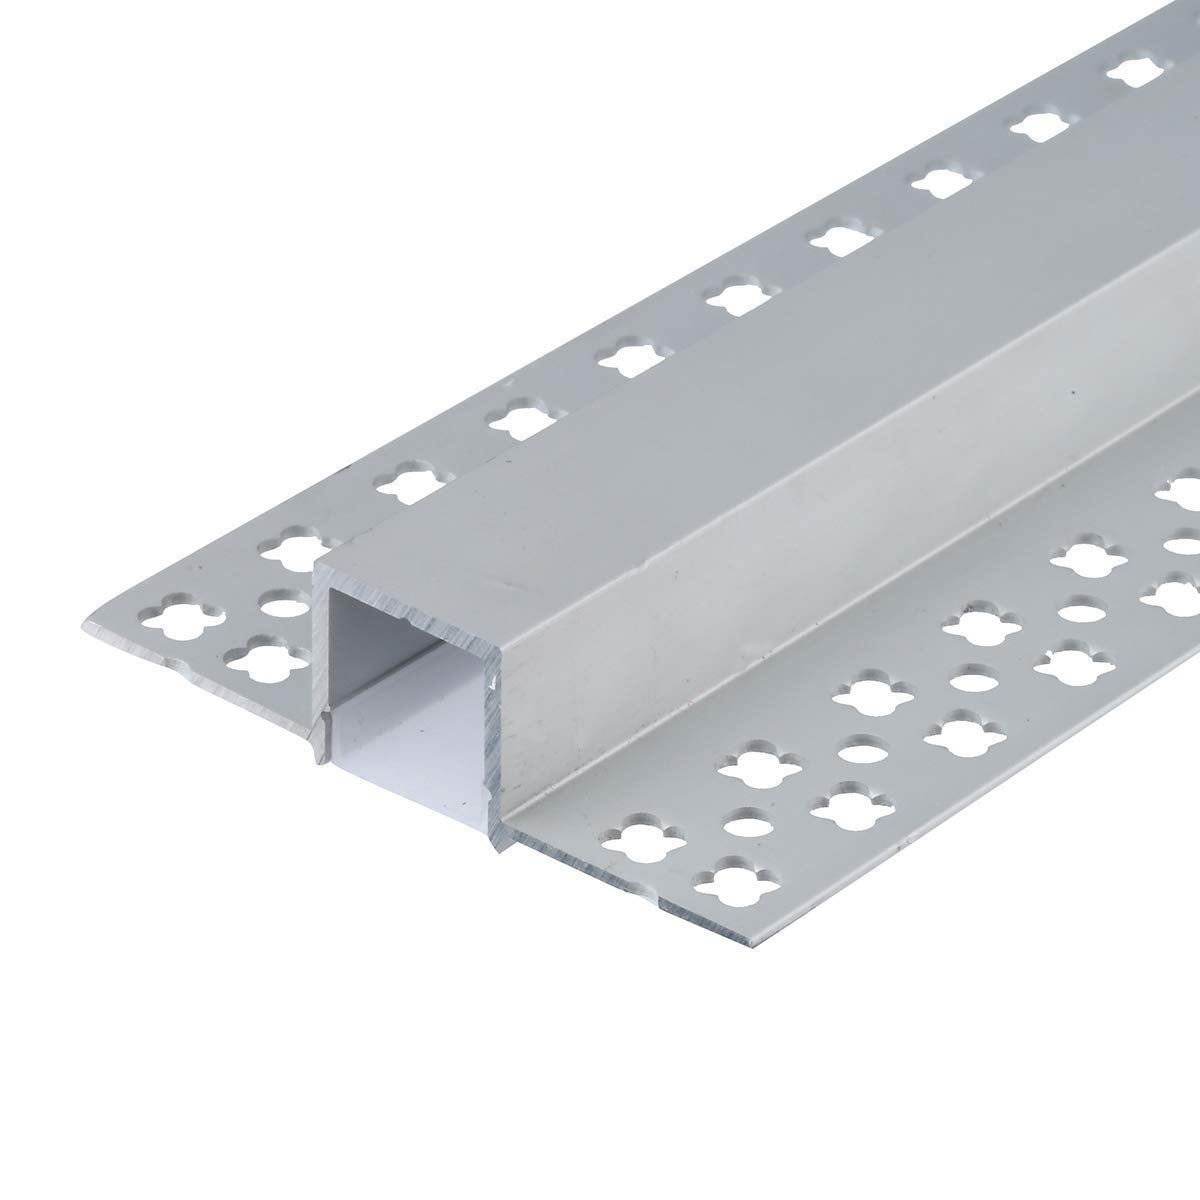 StarlandLed 5-Pack 6.6FT/2 Meter Plaster-in Recessed Slim LED Aluminum Channel with Flange for LED Strip, Aluminium LED Profile with Clip-in Diffuser and End Caps by StarlandLed (Image #4)